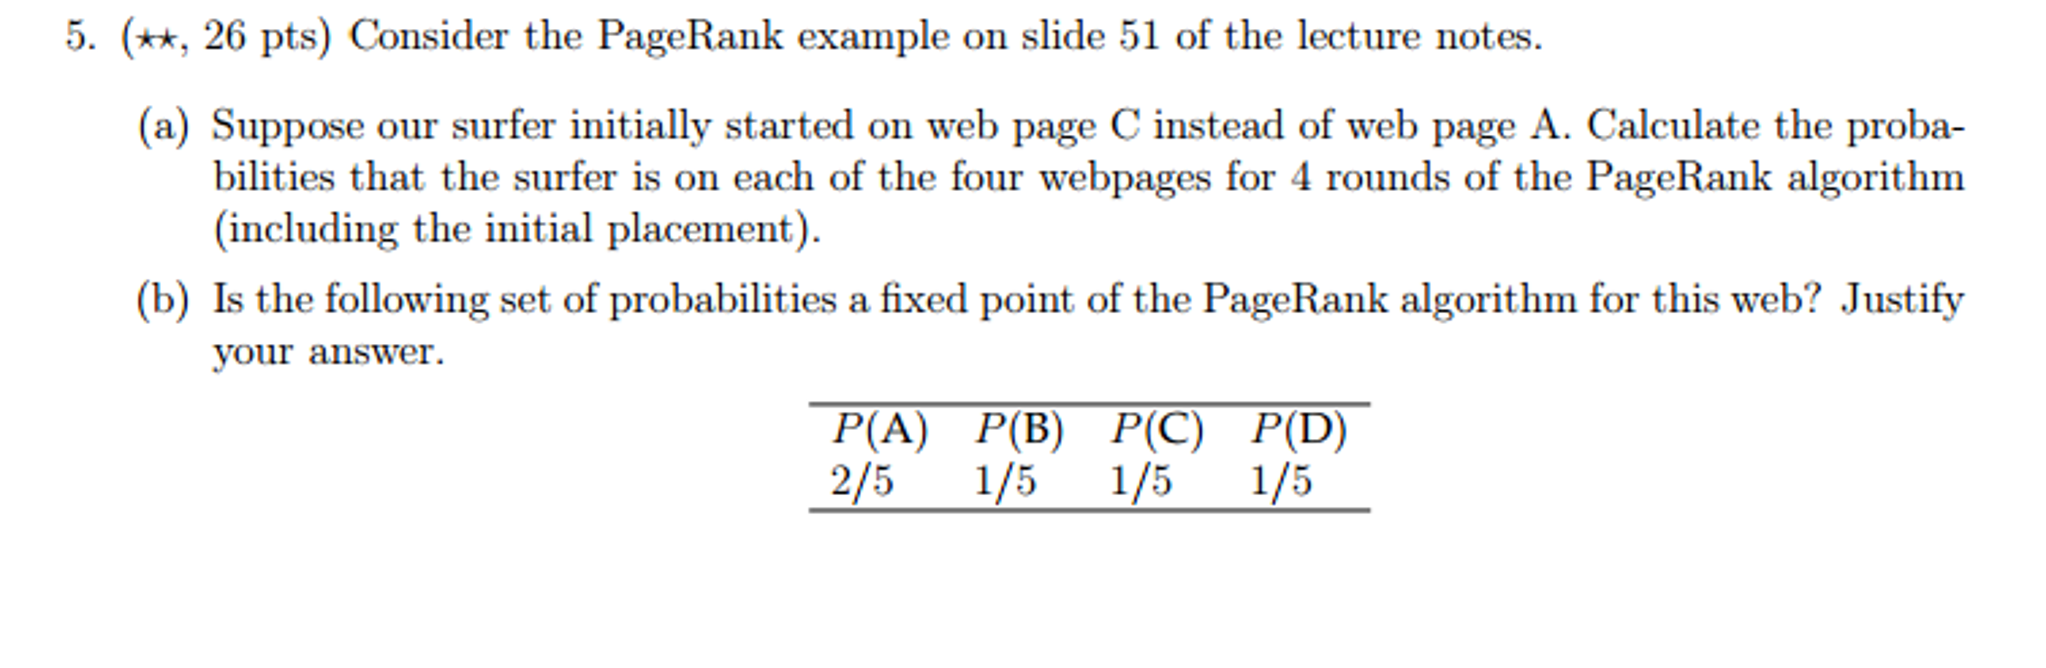 PageRank On A Simple Web 1  Initially Put Our Surf